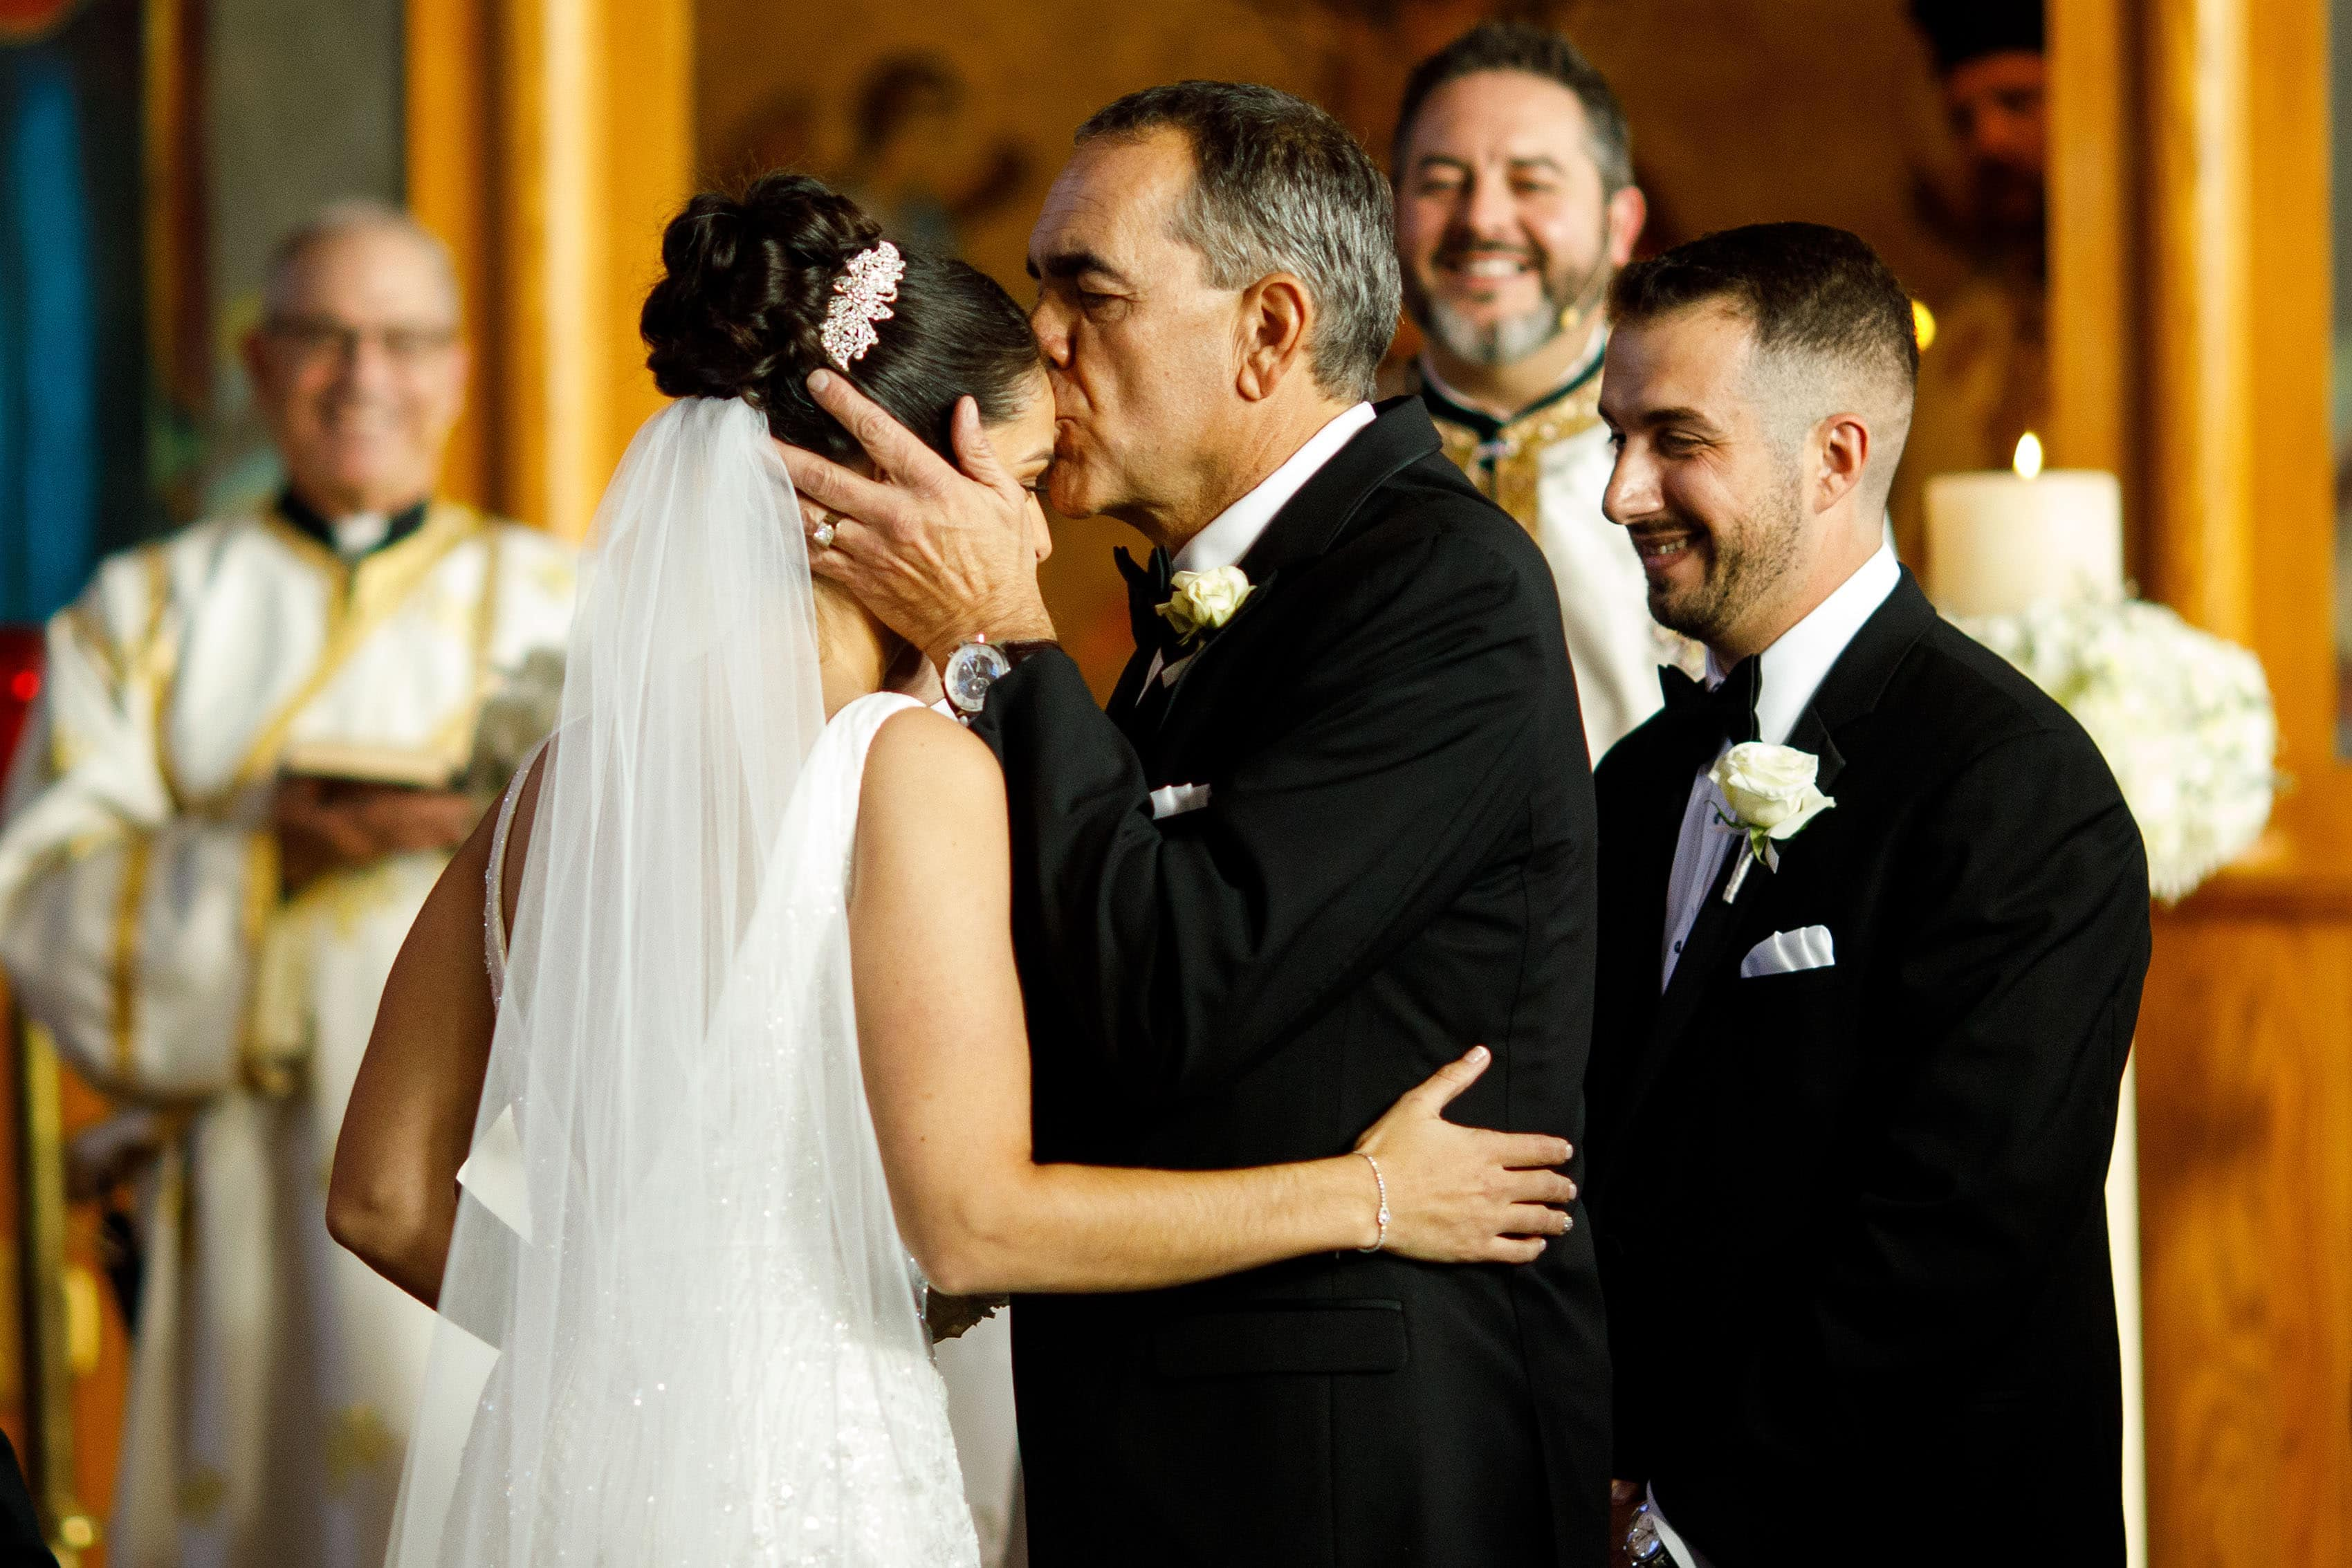 The father of the bride kisses his daughter